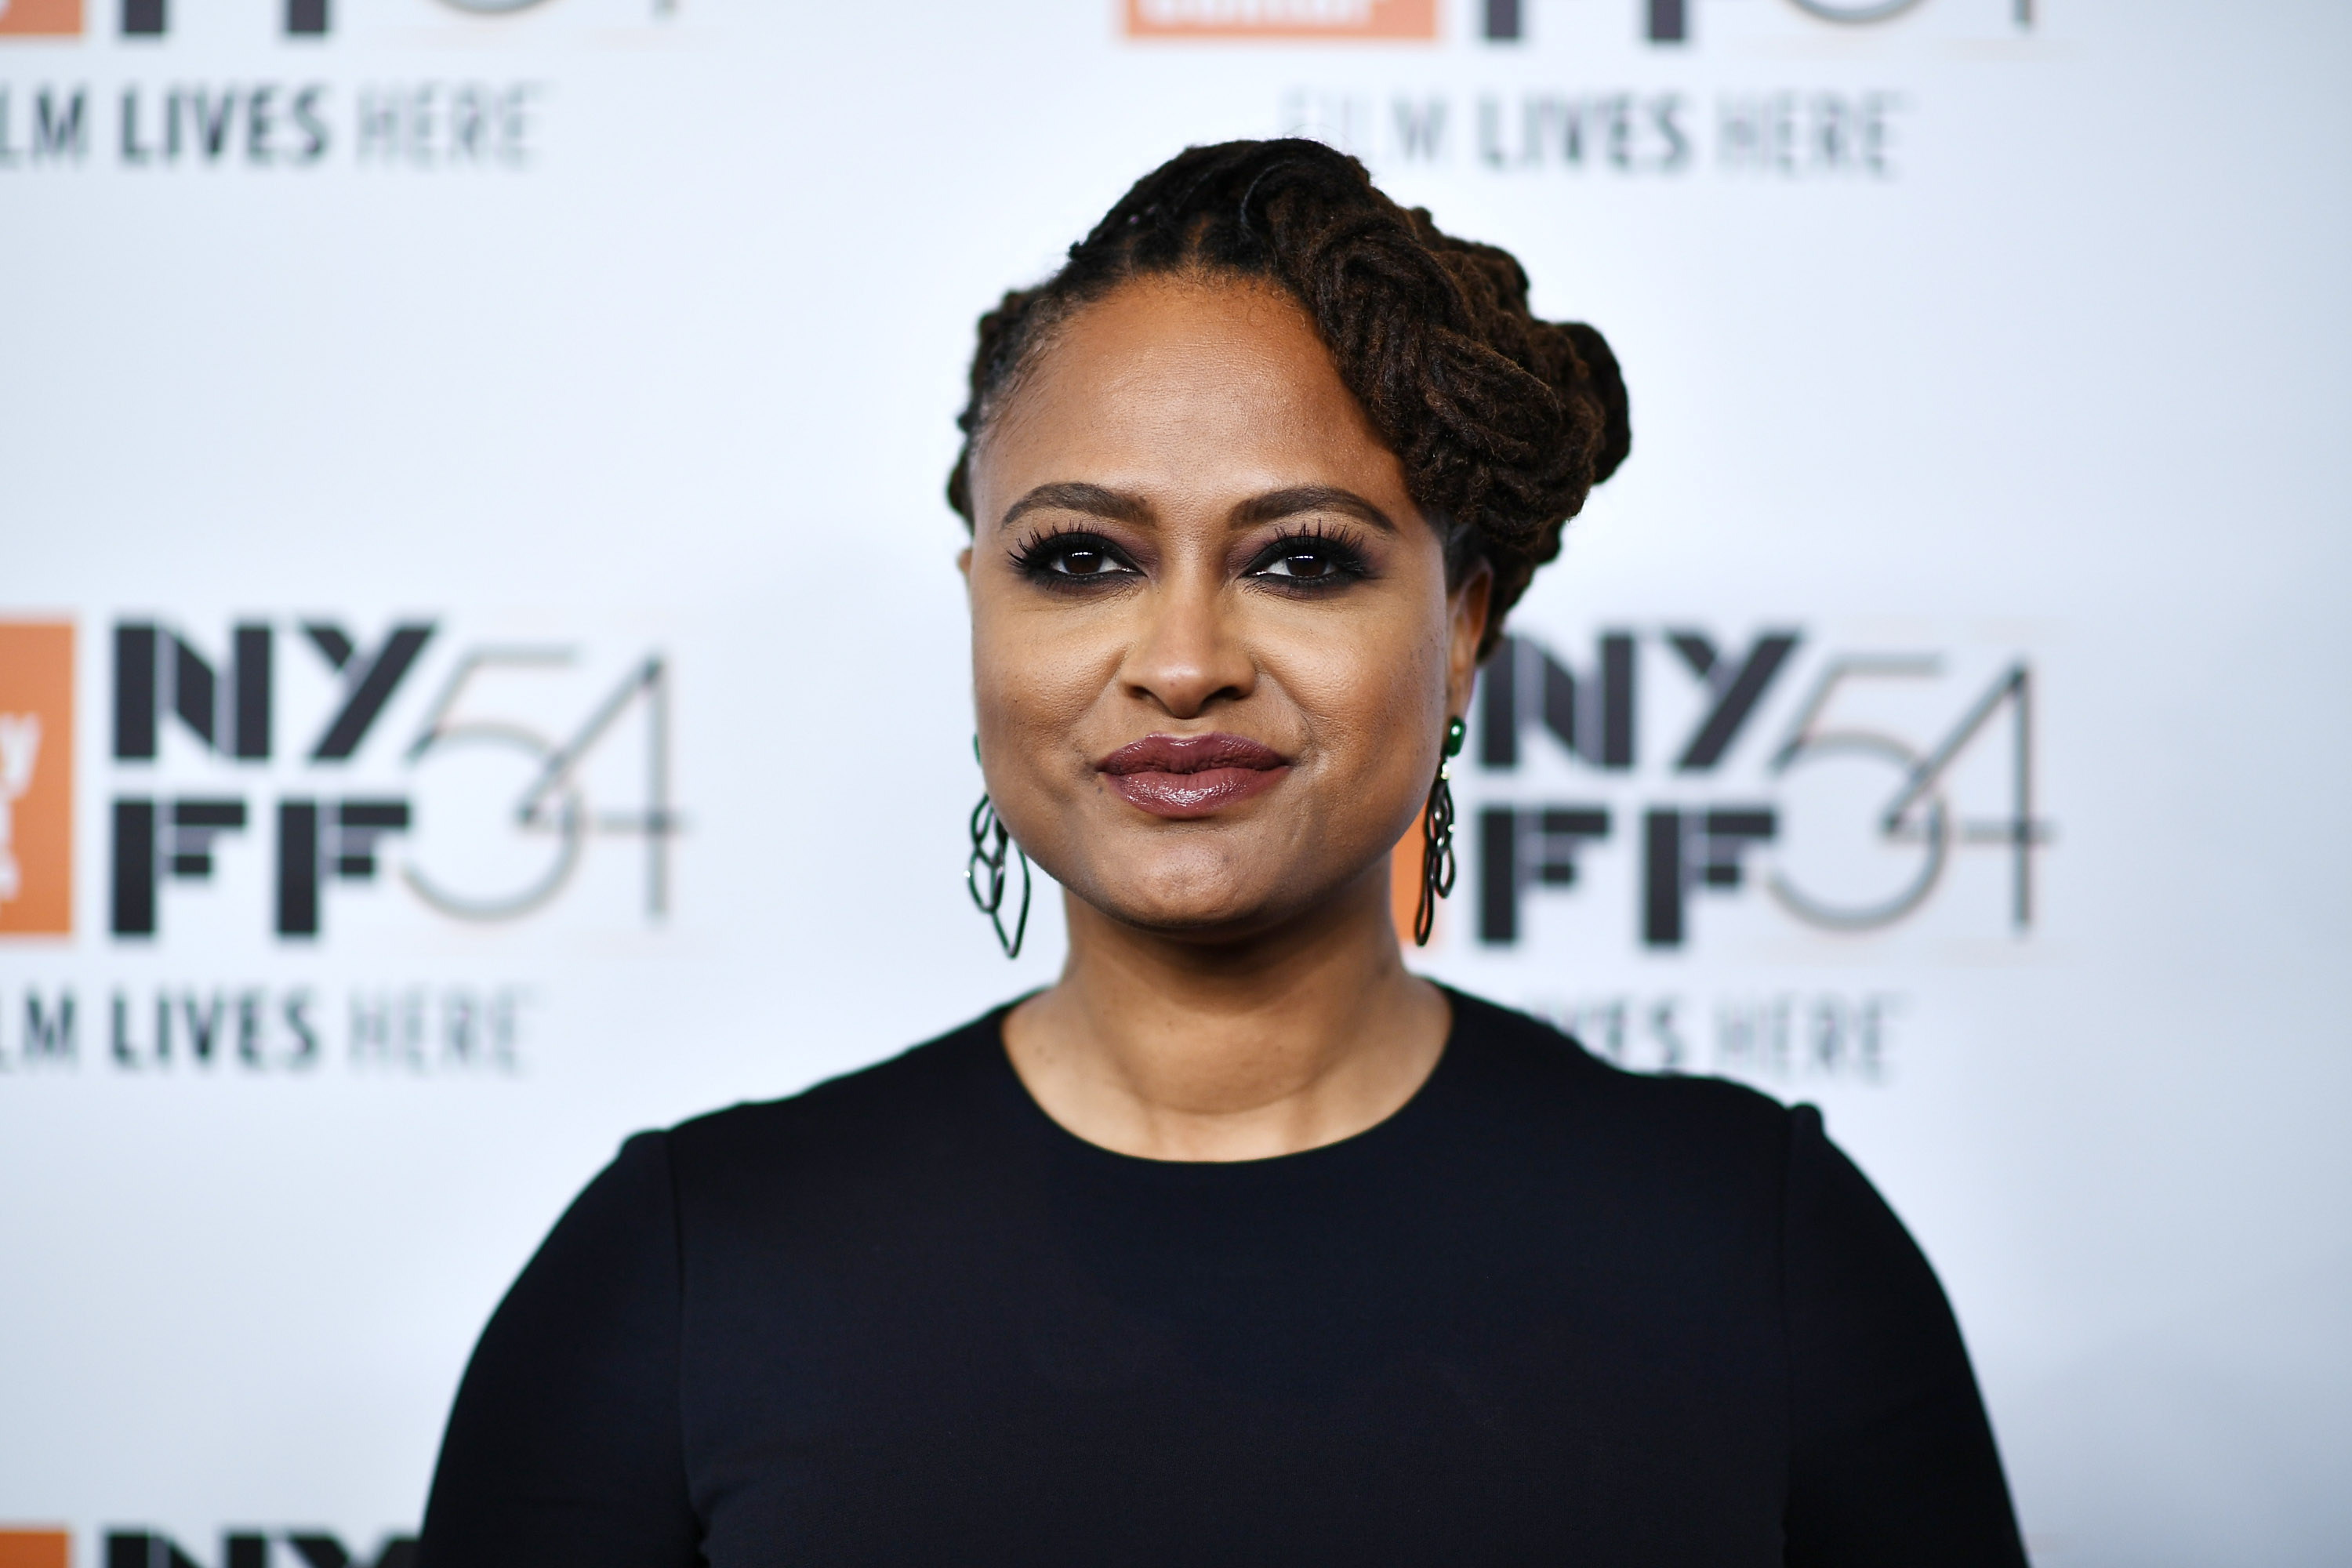 54th New York Film Festival - Opening Night Gala Presentation And '13th' World Premiere - Red Carpet